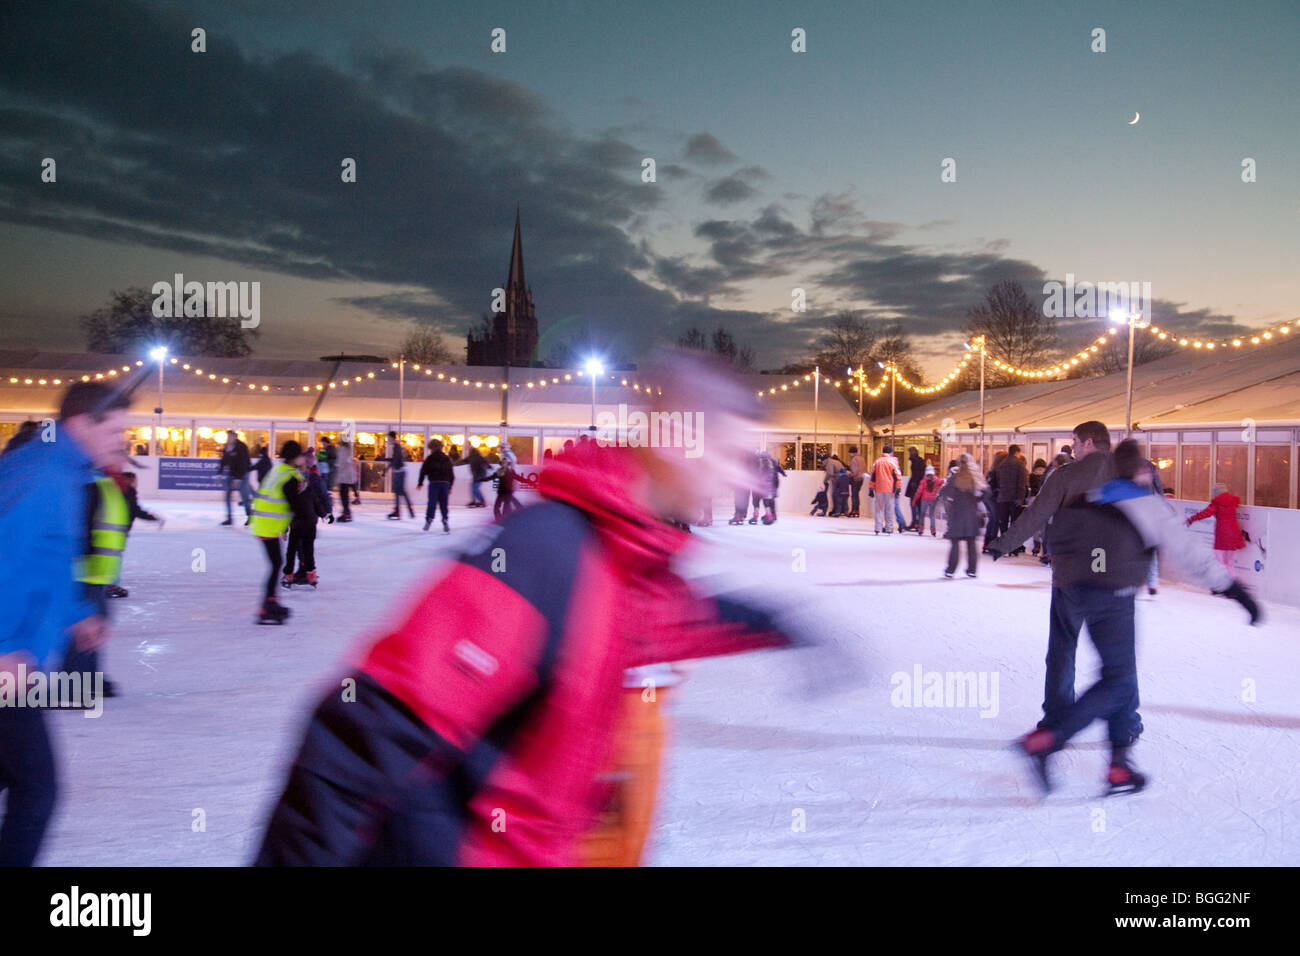 Ice skaters on the outdoor ice rink at Christmas, Parkers Piece, Cambridge UK - Stock Image